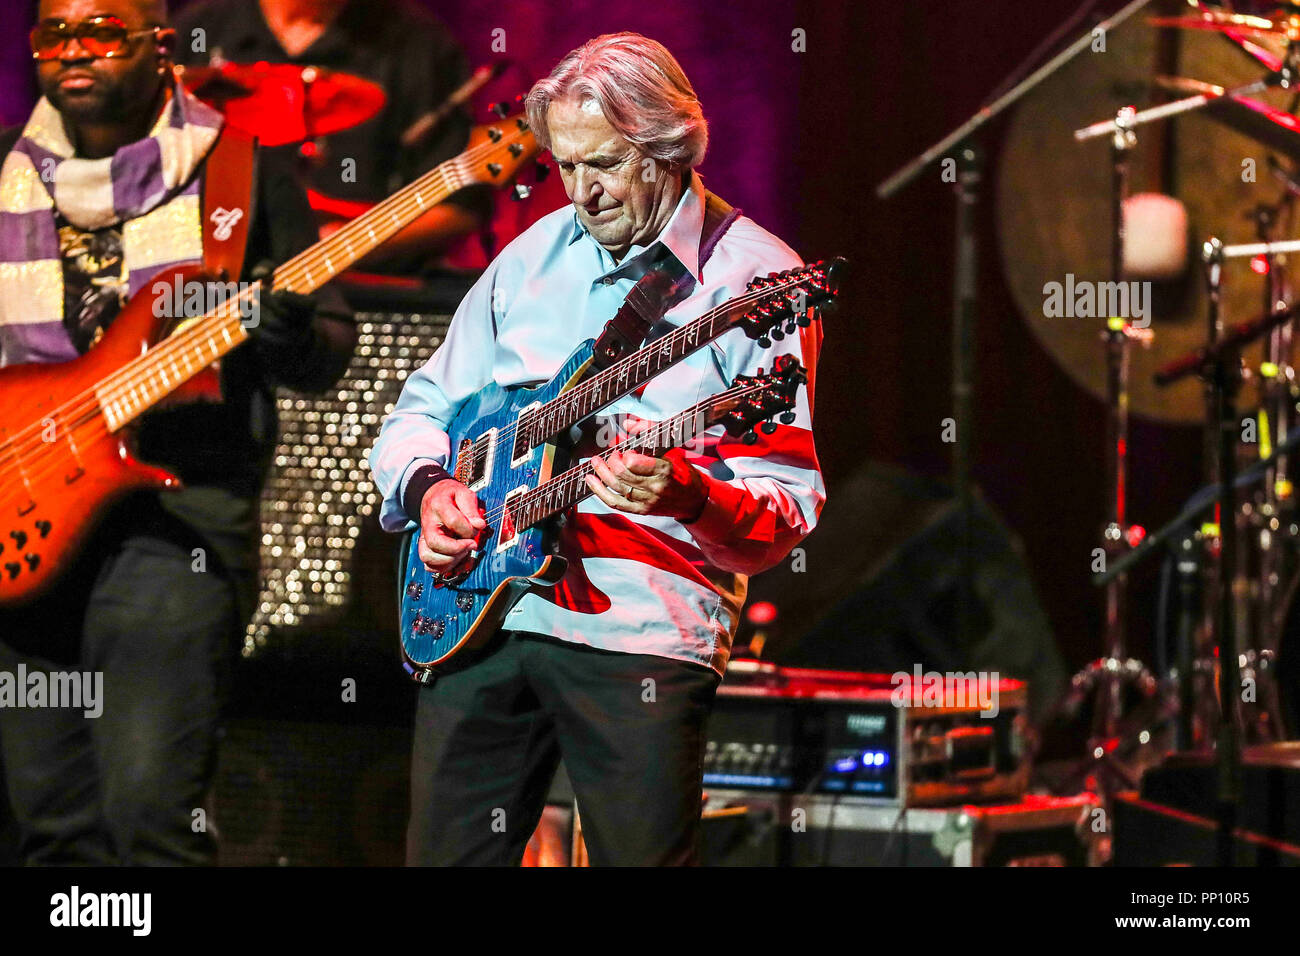 Jazz Pioneer - guitarist John McLaughlin 26